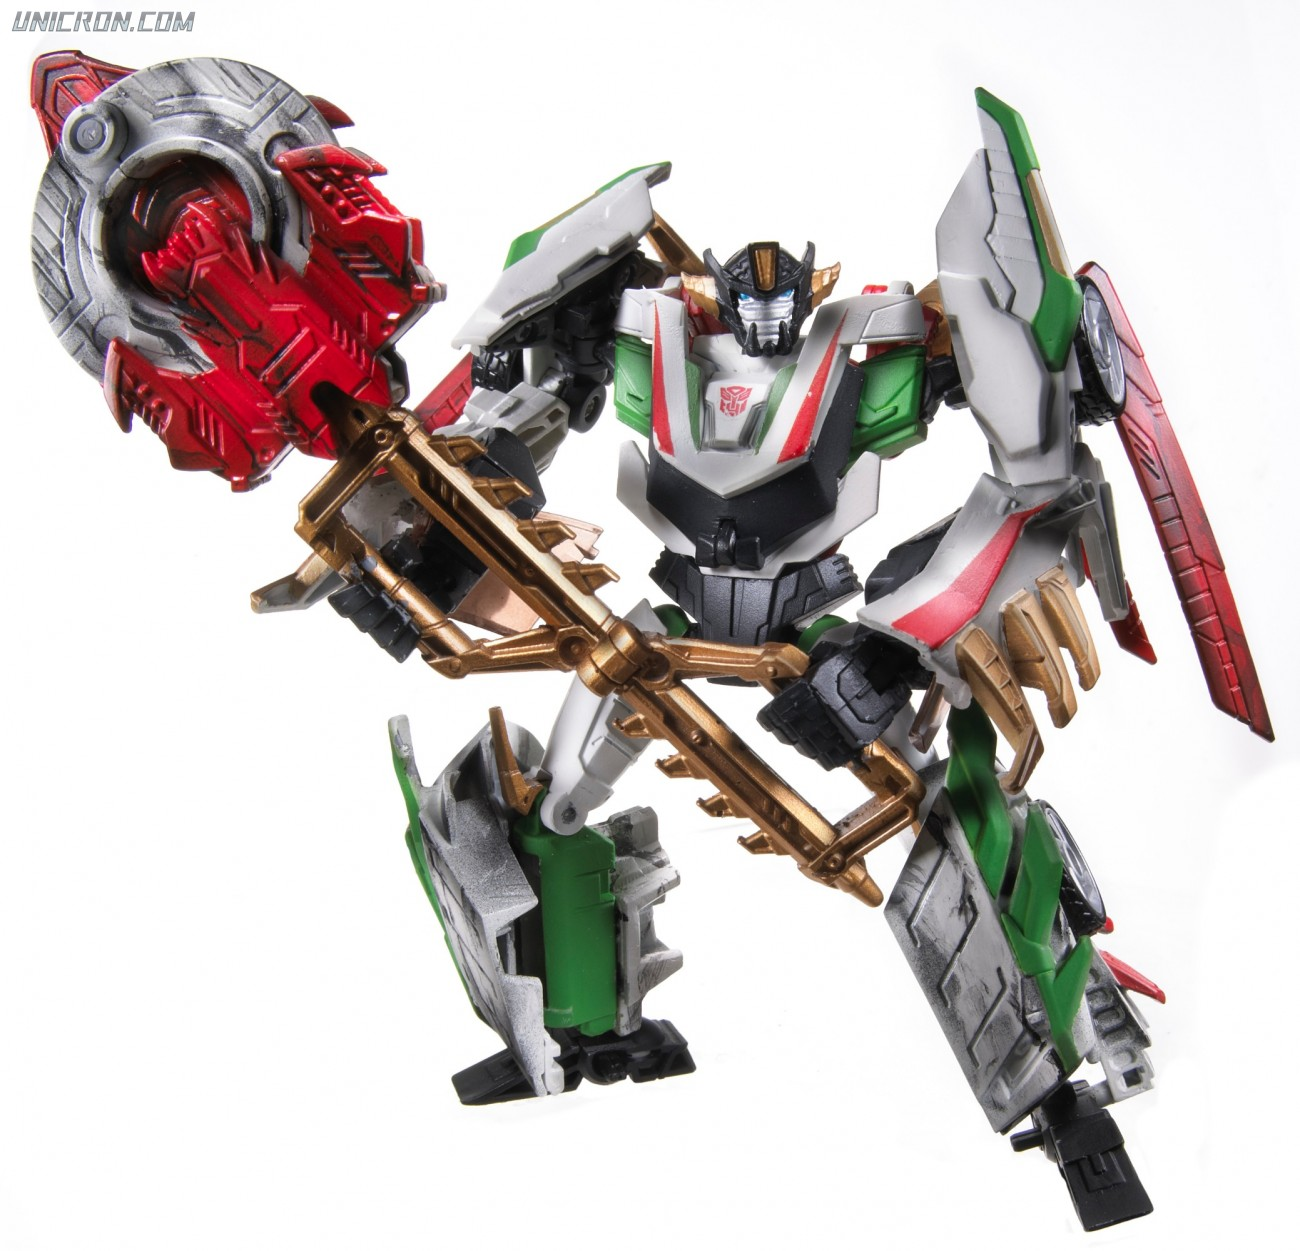 Transformers Prime Wheeljack (Beast Hunters) toy